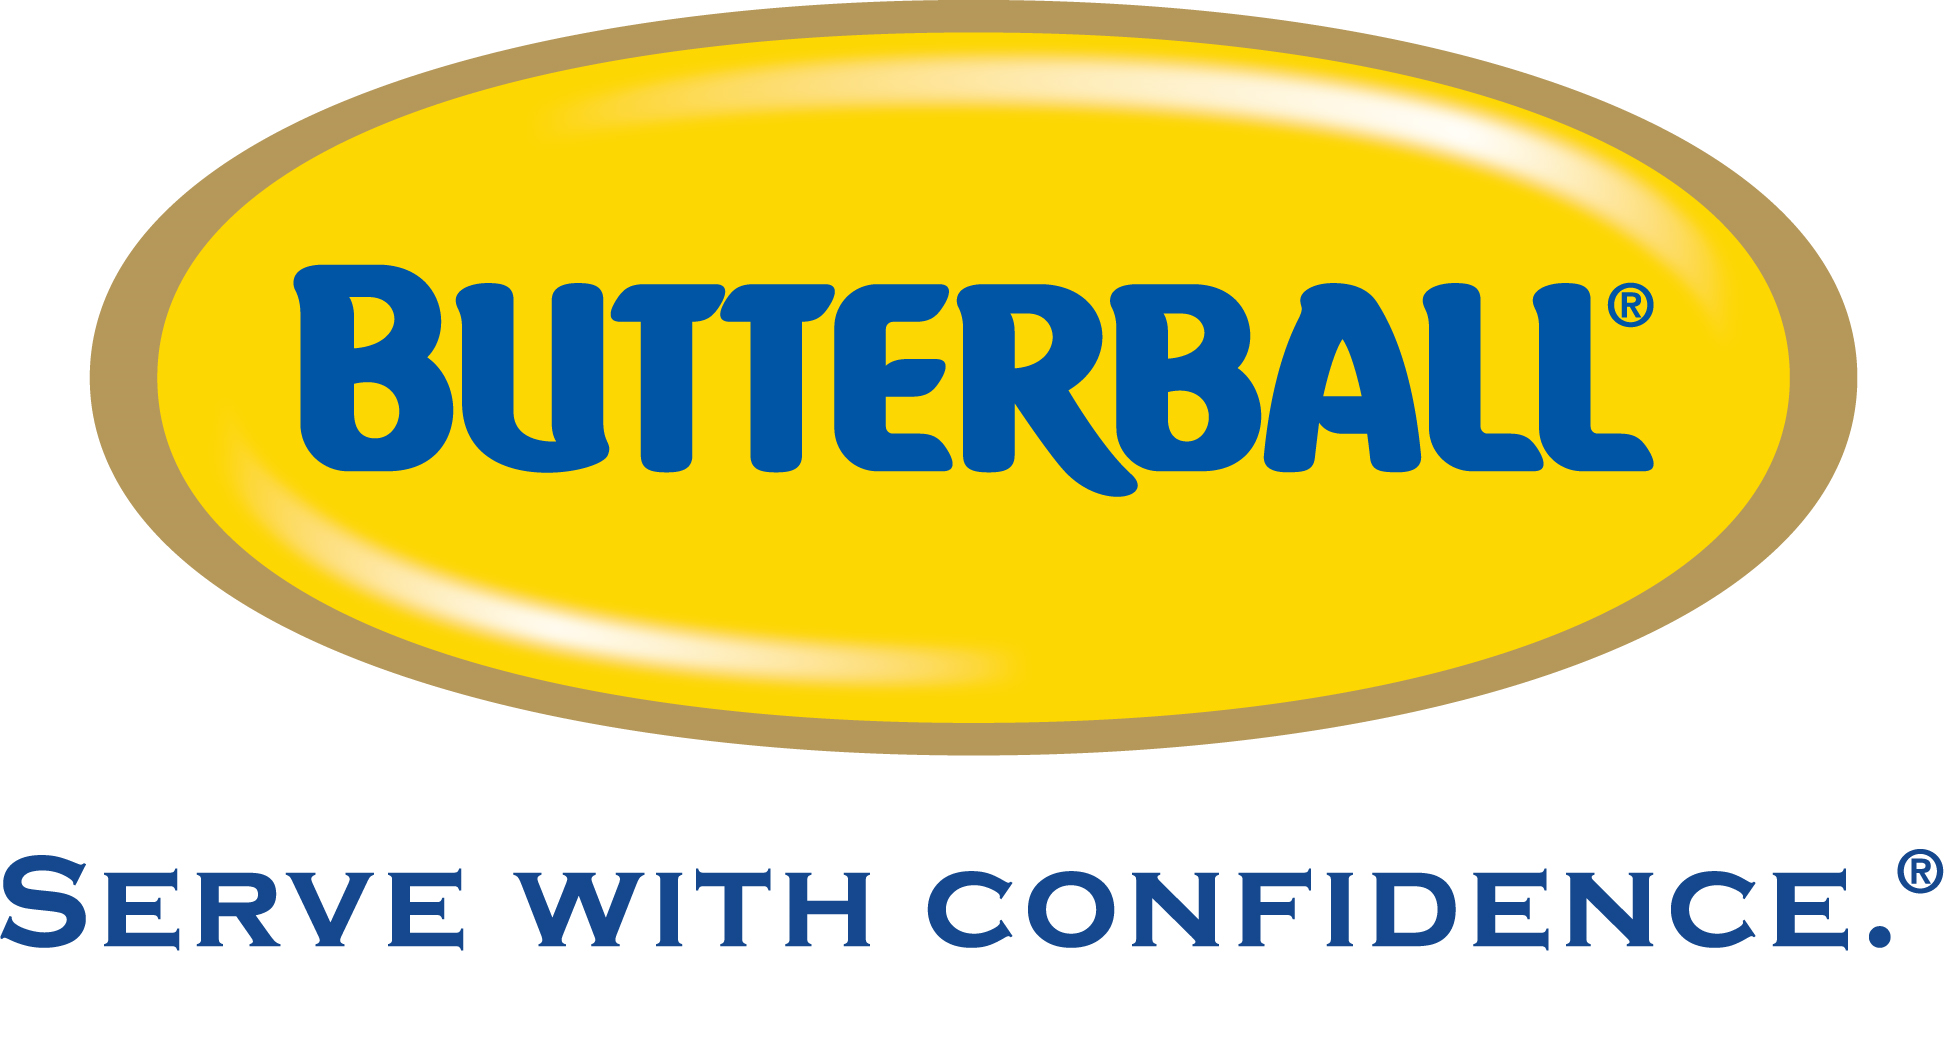 Butterball foodservice logo